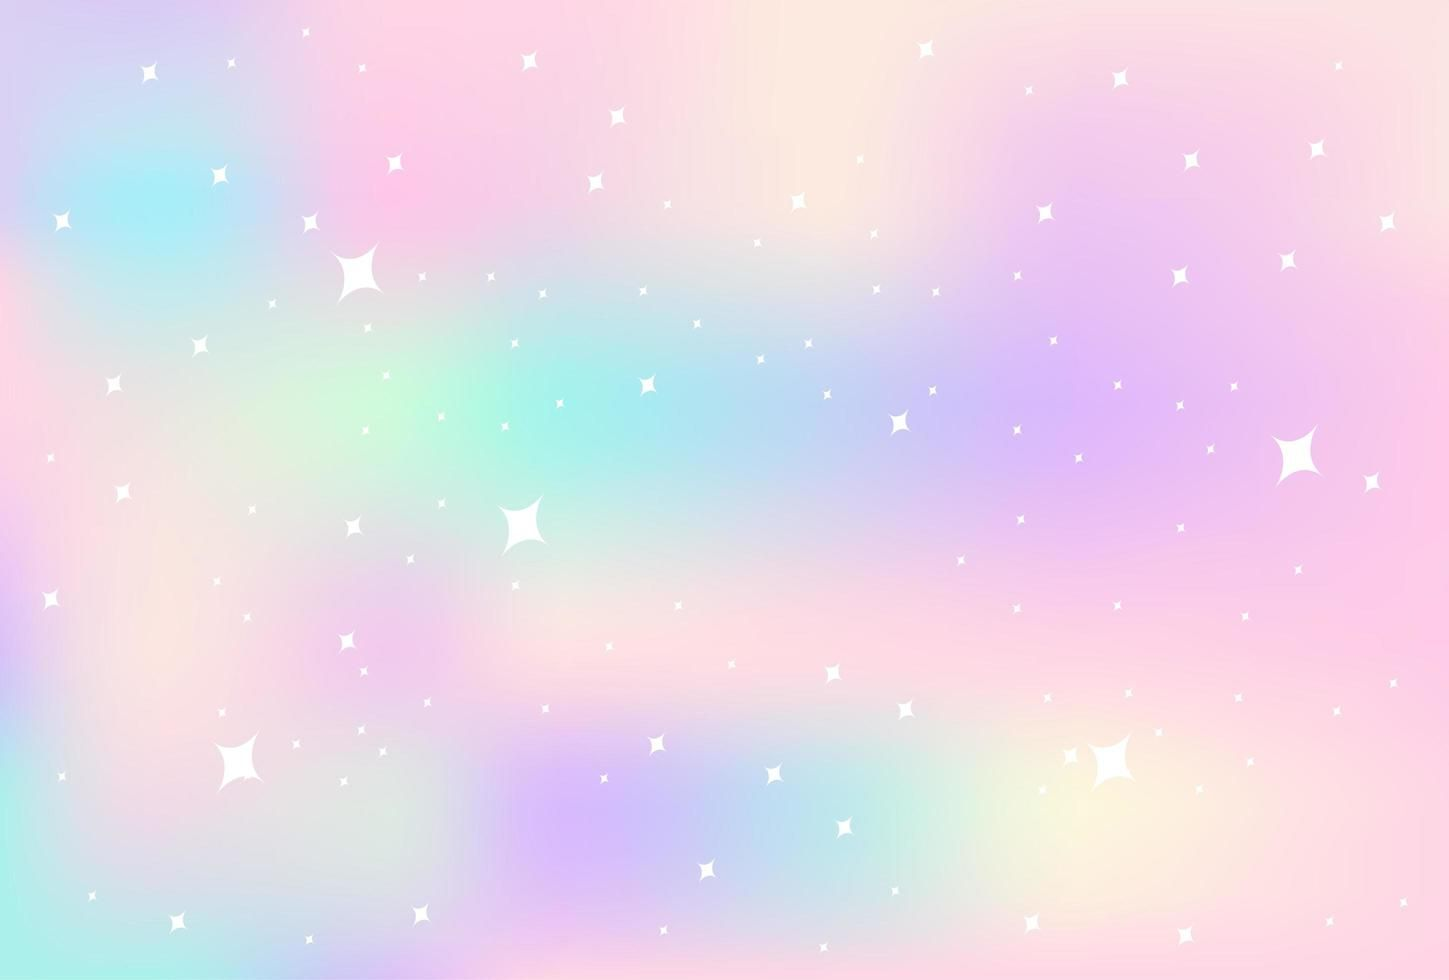 Pastel Rainbow Blurry Background With Sparks Rainbow Wallpaper Pastel Rainbow Background Rainbow Background